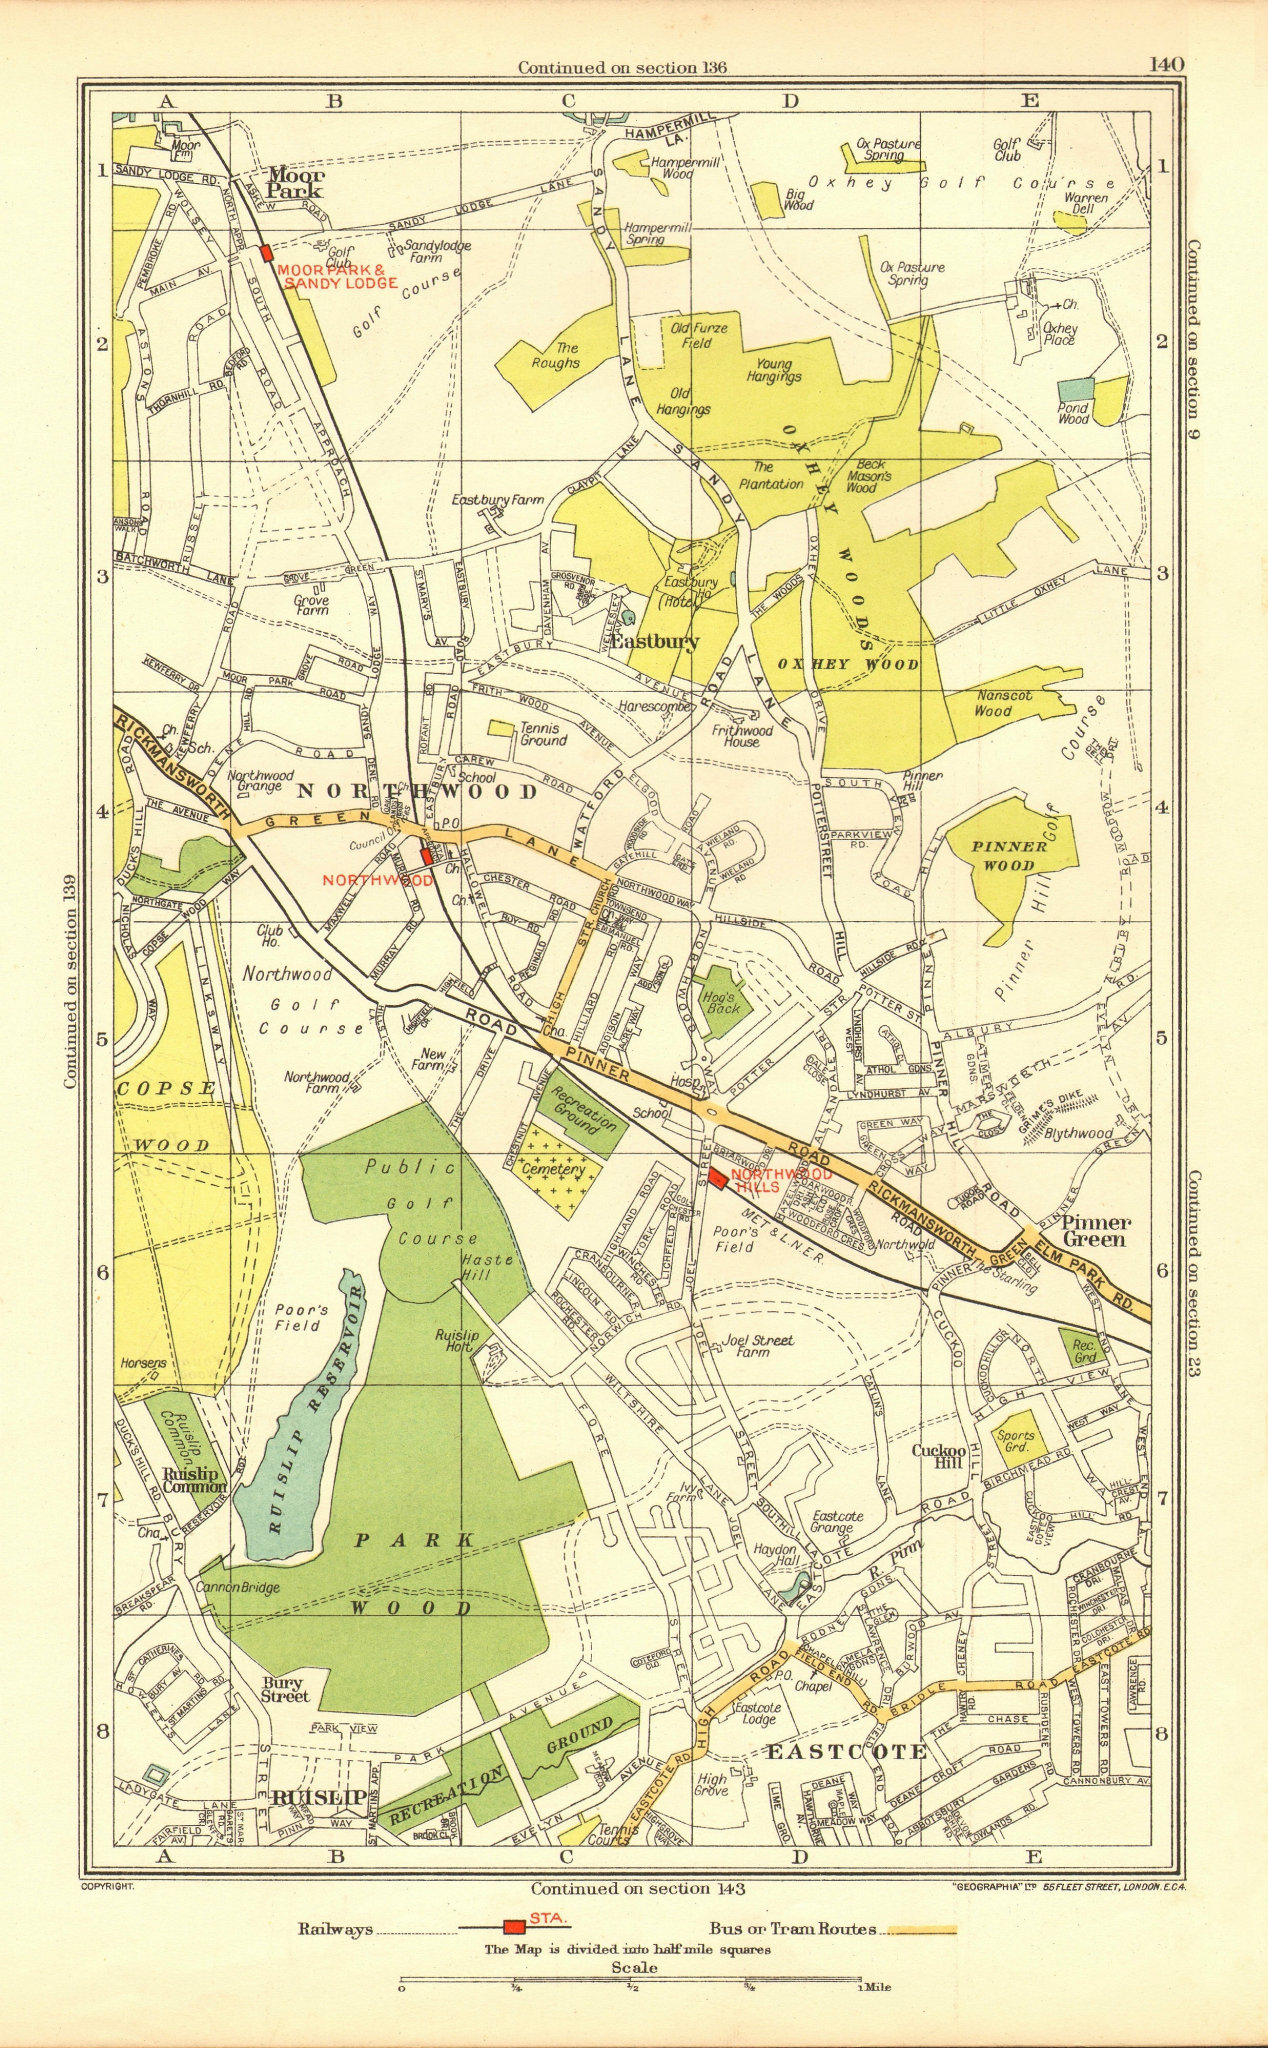 Associate Product NORTHWOOD. Pinner Eastcote Ruislip Moor Park South Oxhey (Middlesex) 1937 map